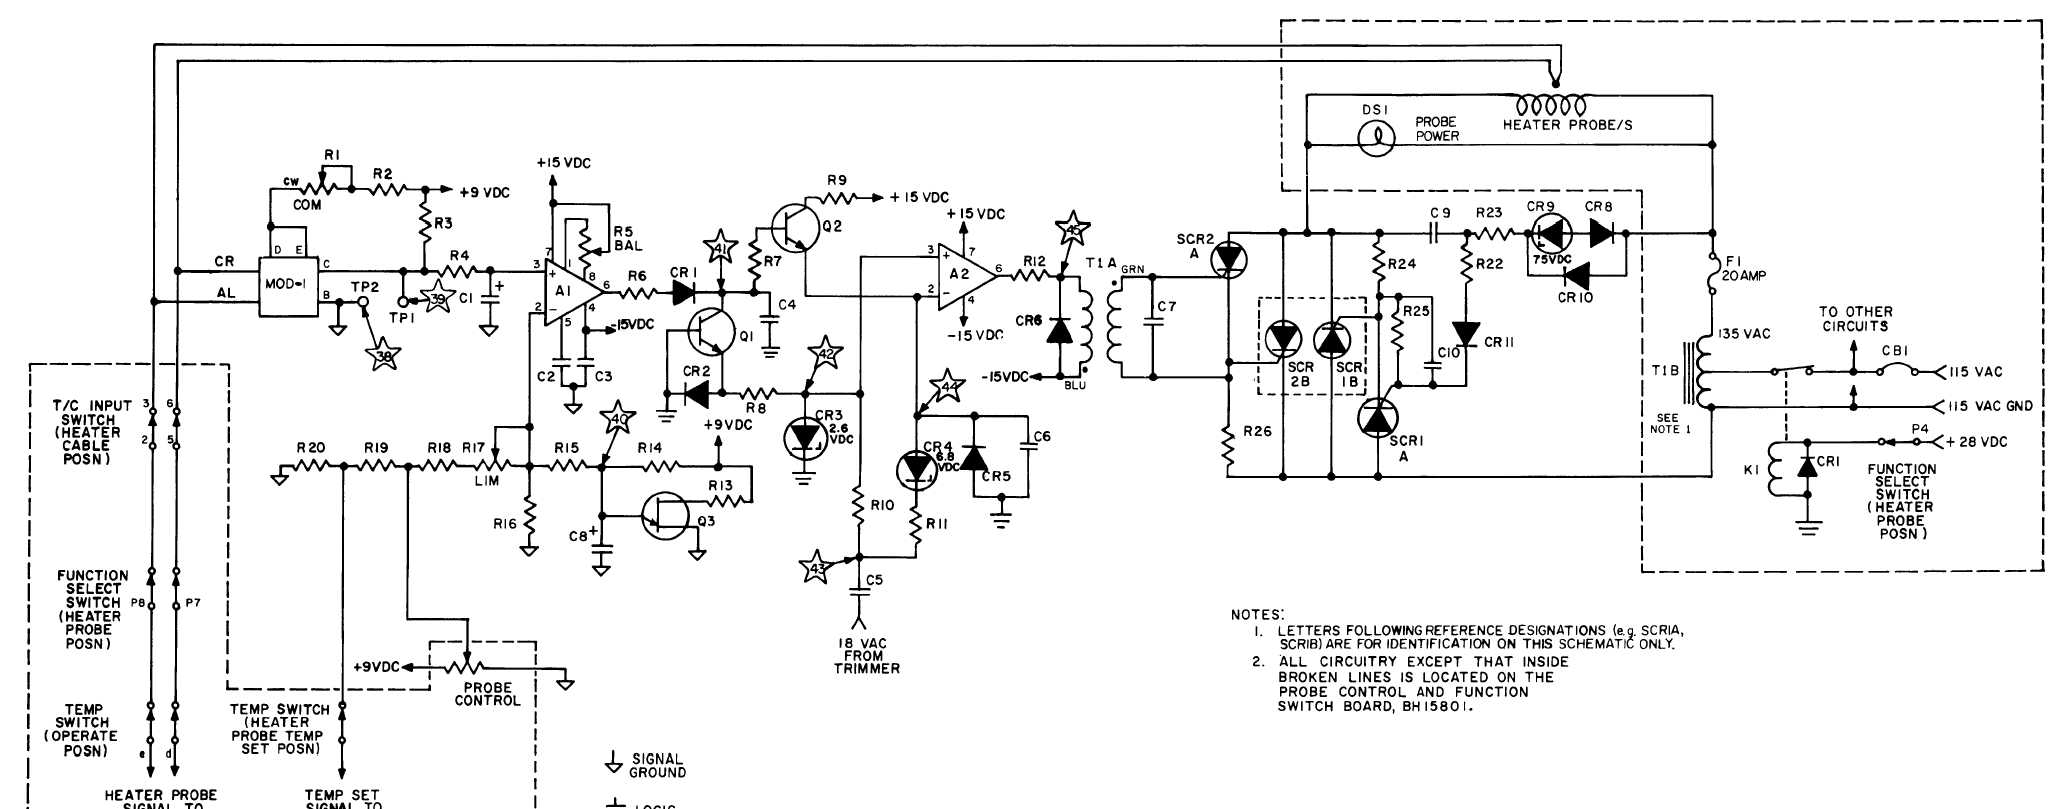 Schematic Diagram of Heater Probe Control Circuit